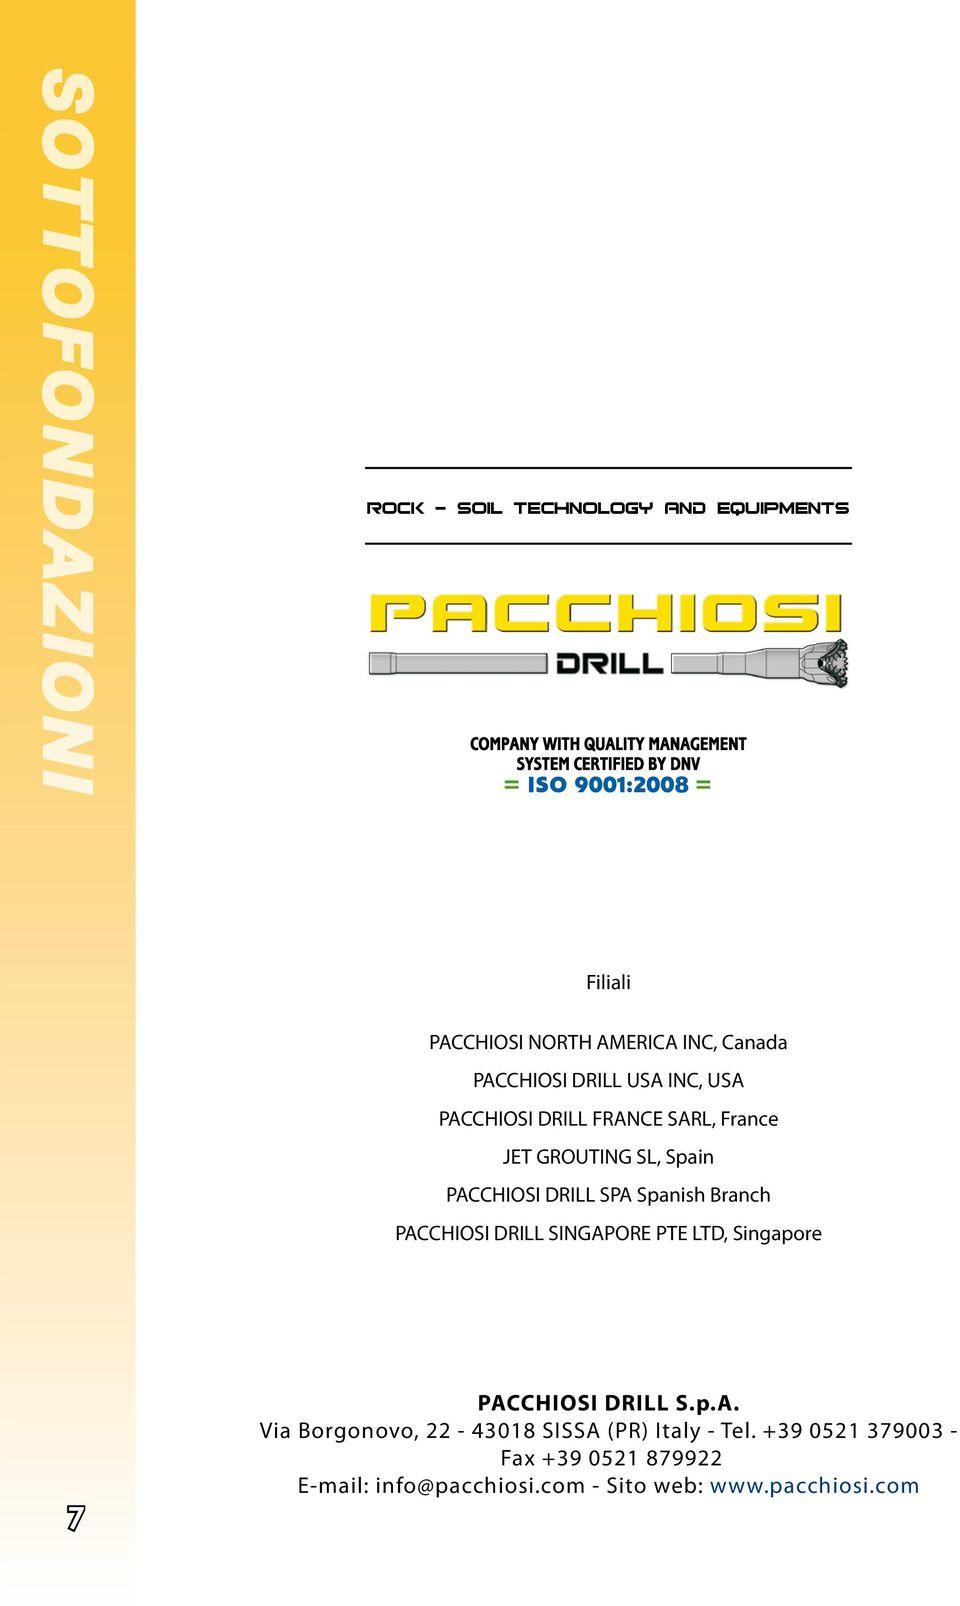 Branch PACCHIOSI DRILL SINGAPORE PTE LTD, Singapore 7 PACCHIOSI DRILL S.p.A. Via Borgonovo, 22-43018 SISSA (PR) Italy - Tel.